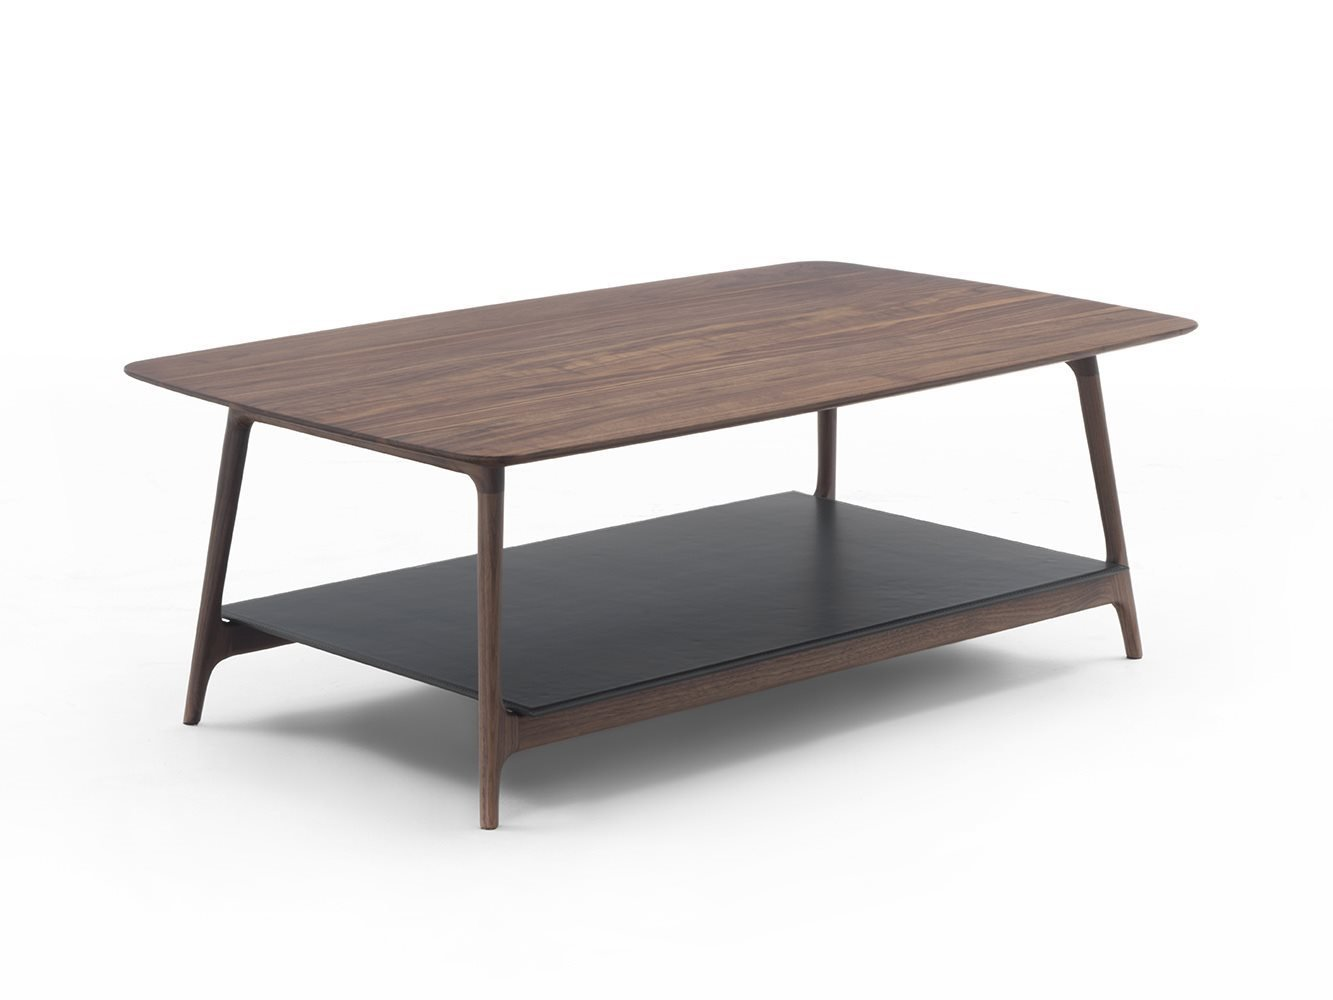 Trilot Coffee Table from Porada, designed by M. Marconato and T. Zappa